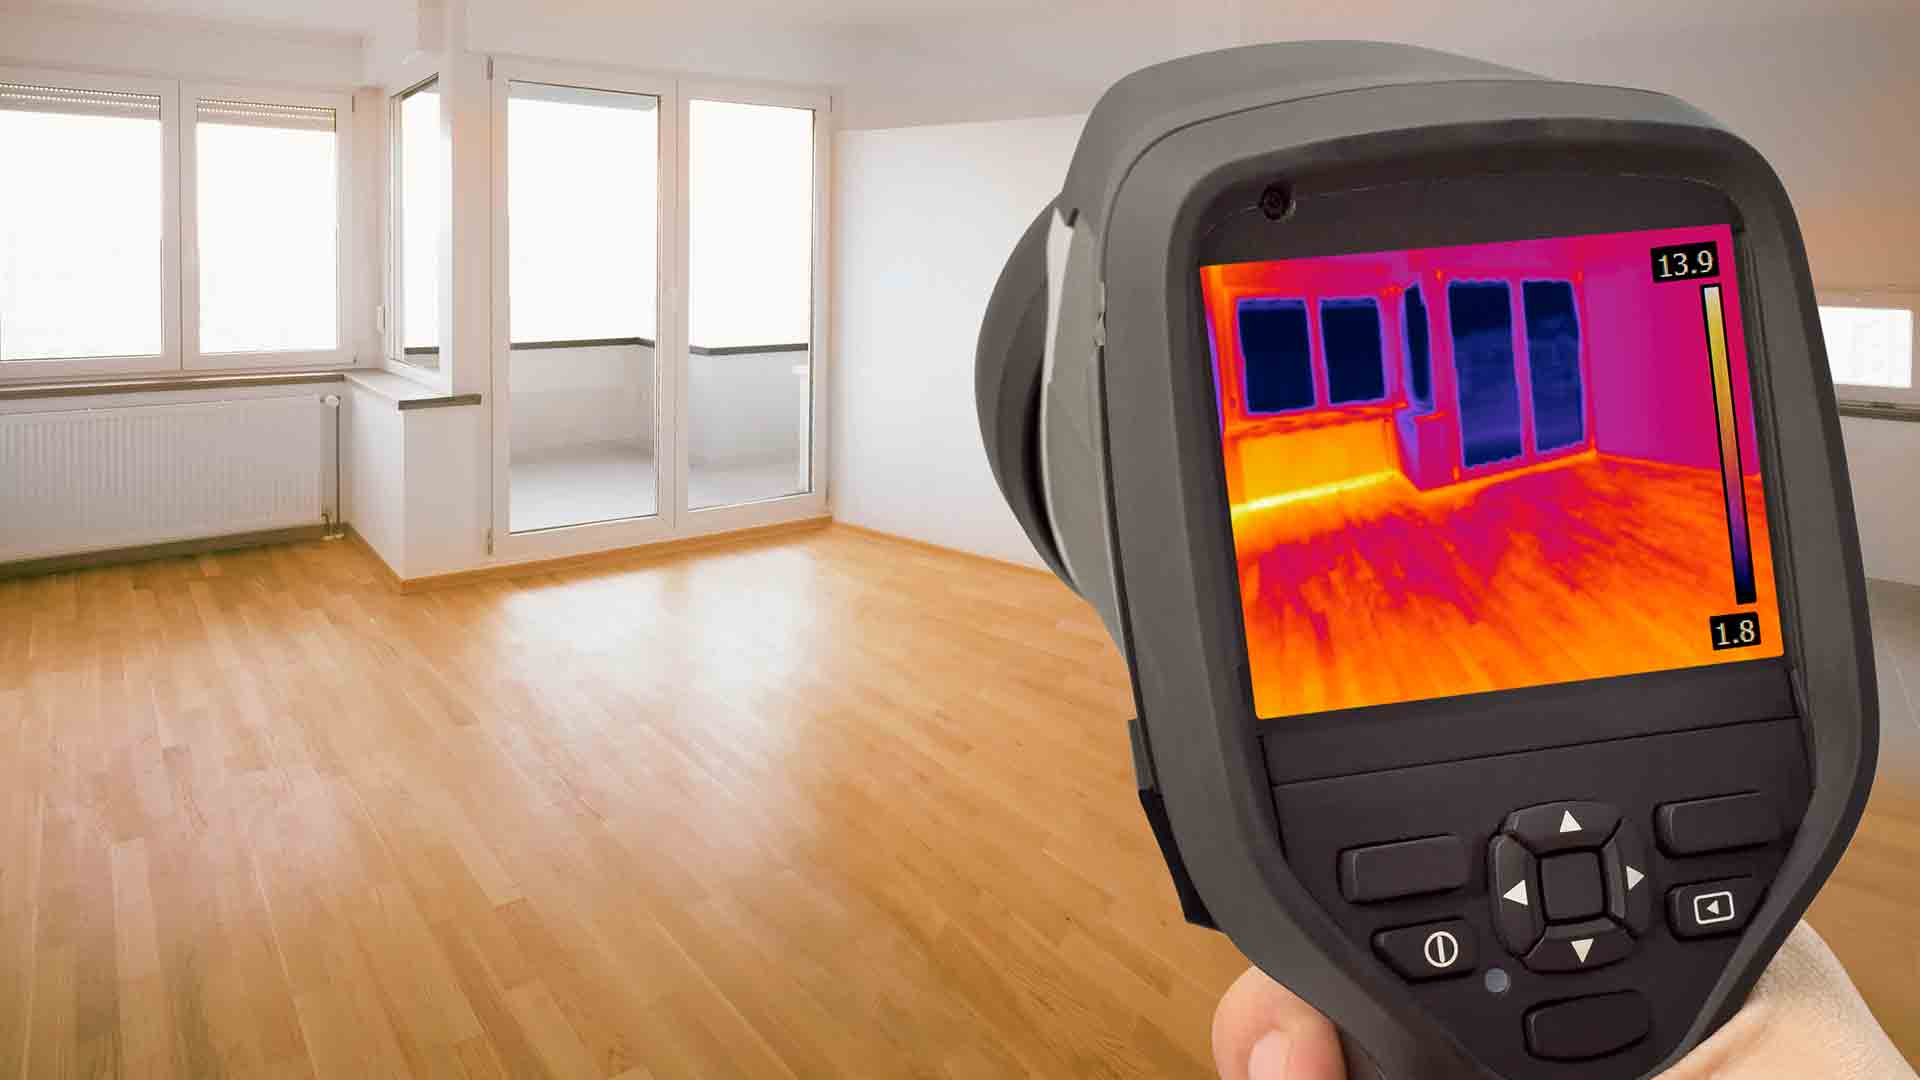 thermal-imaging-home-inspections-in-las-vegas-nv-1920px-1080px.jpg